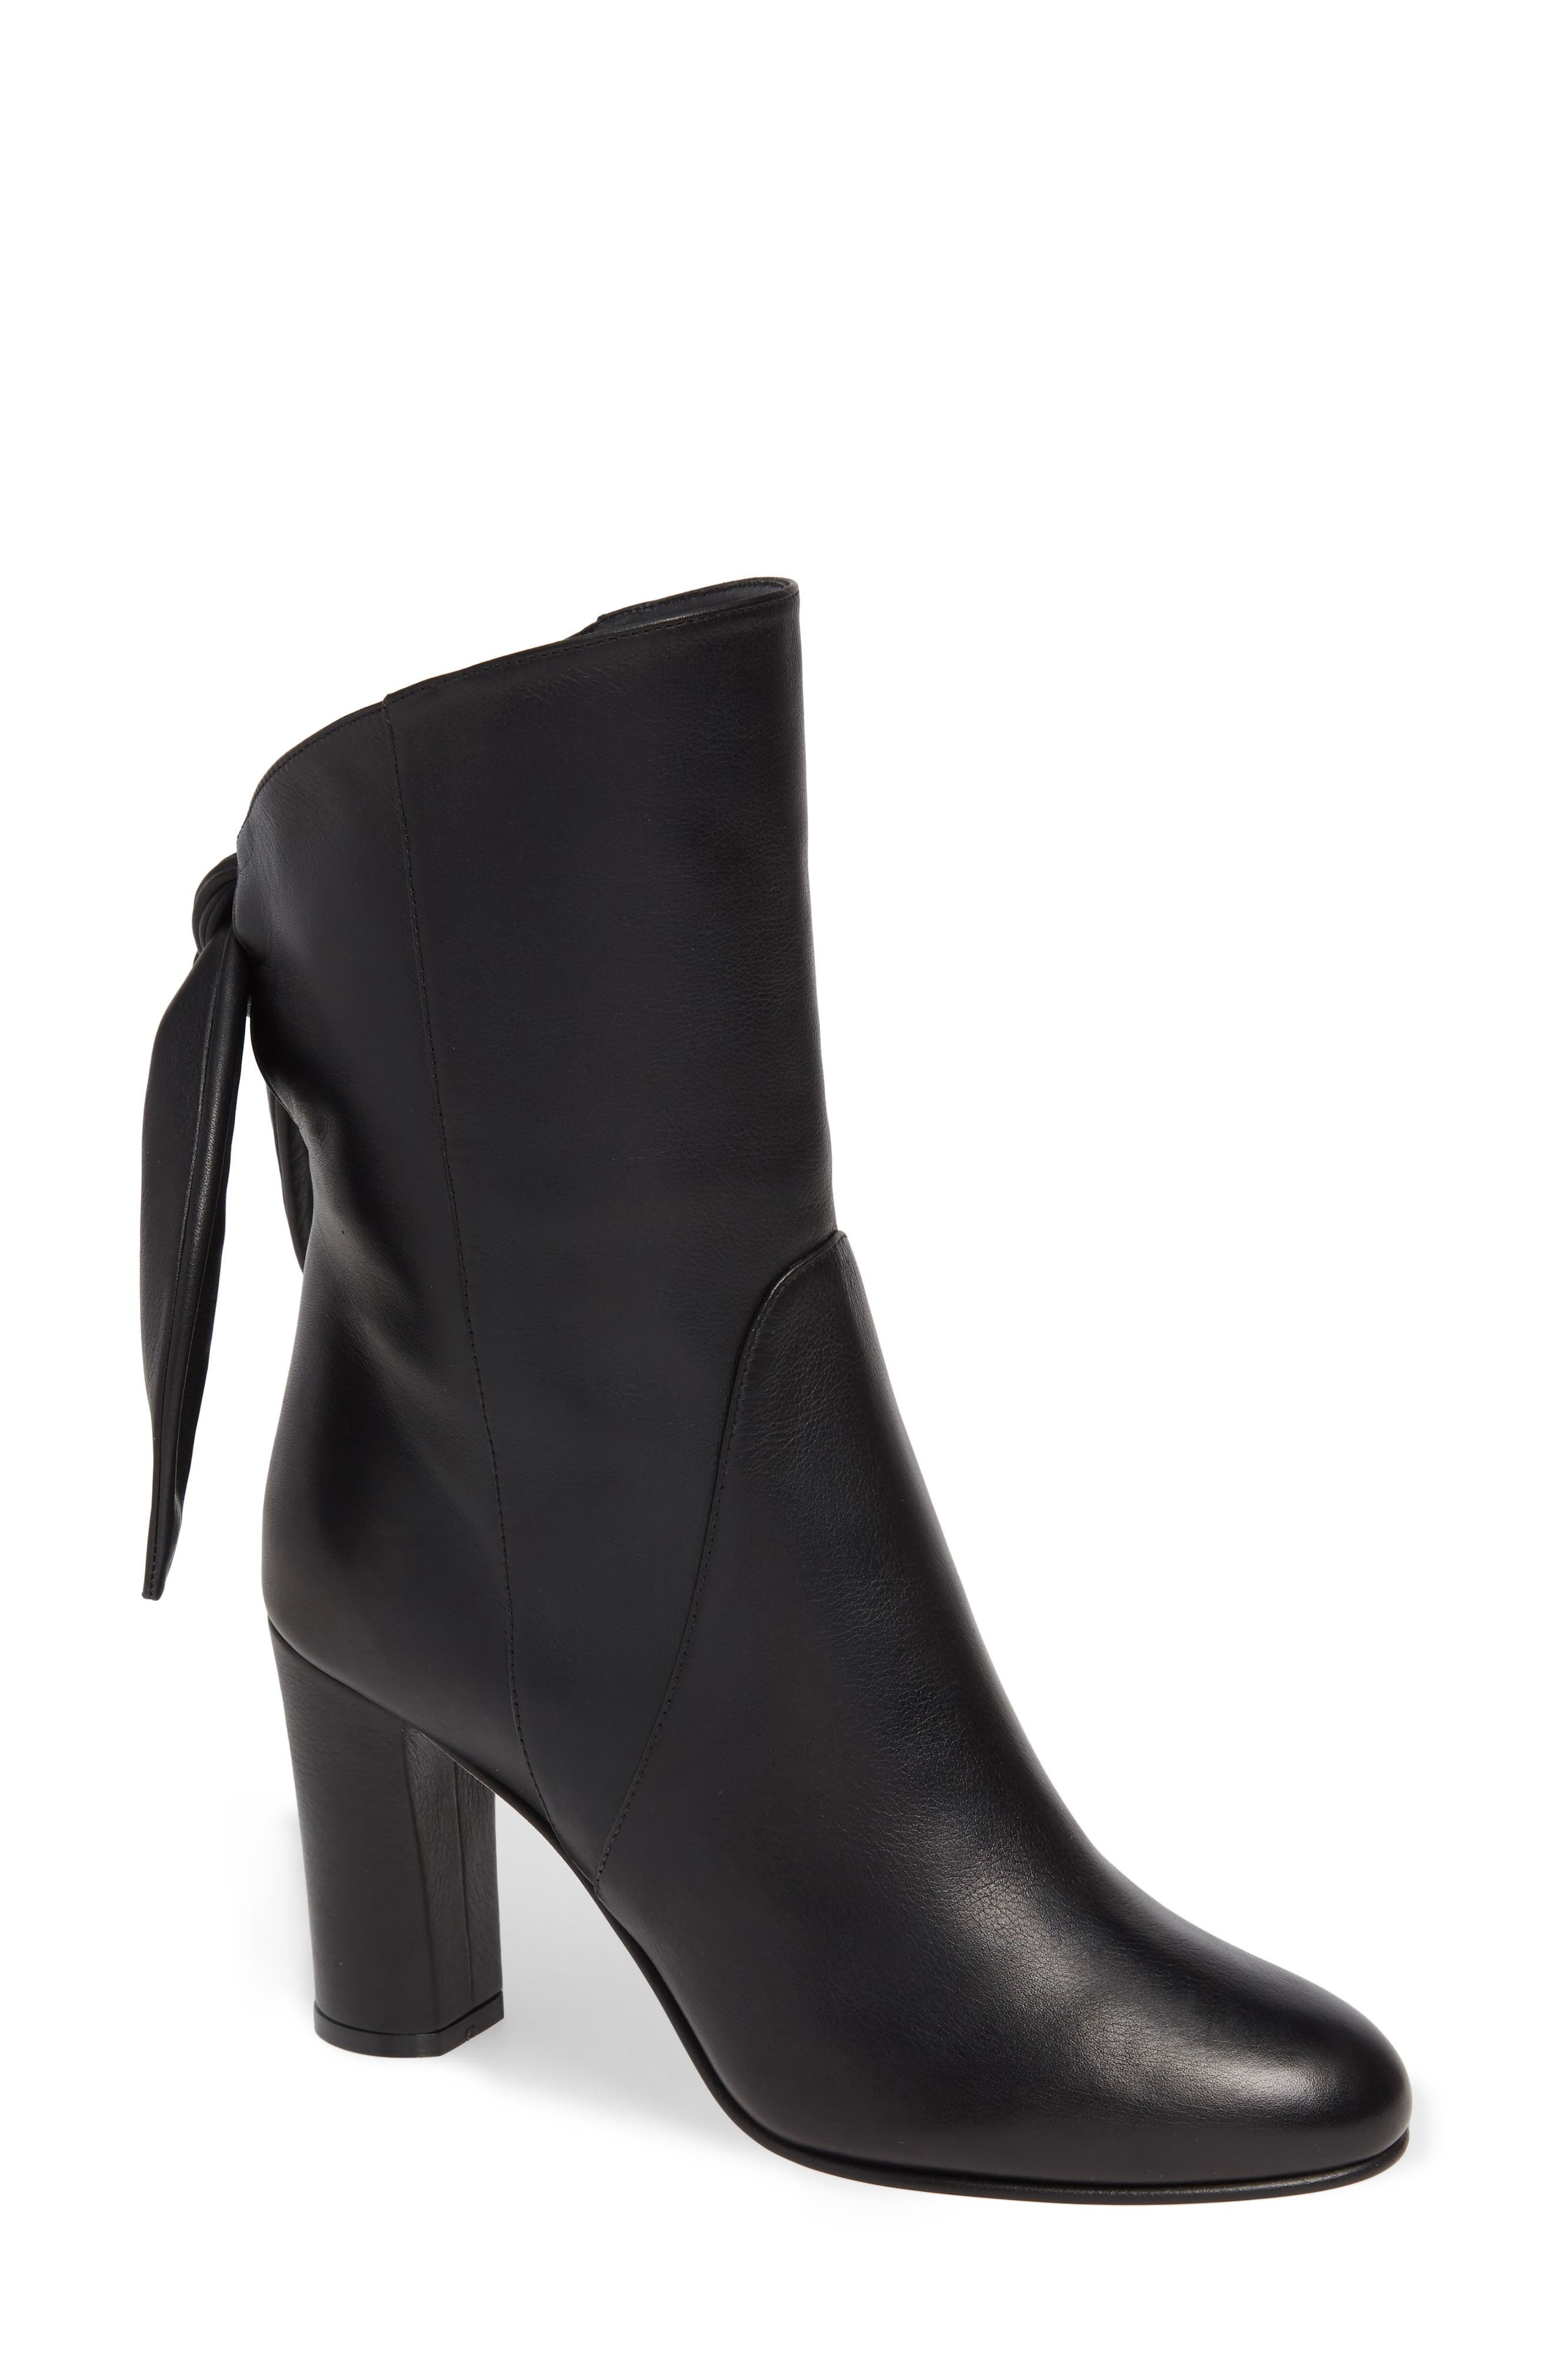 JIMMY CHOO Malene Bow Boot, Main, color, BLACK LEATHER